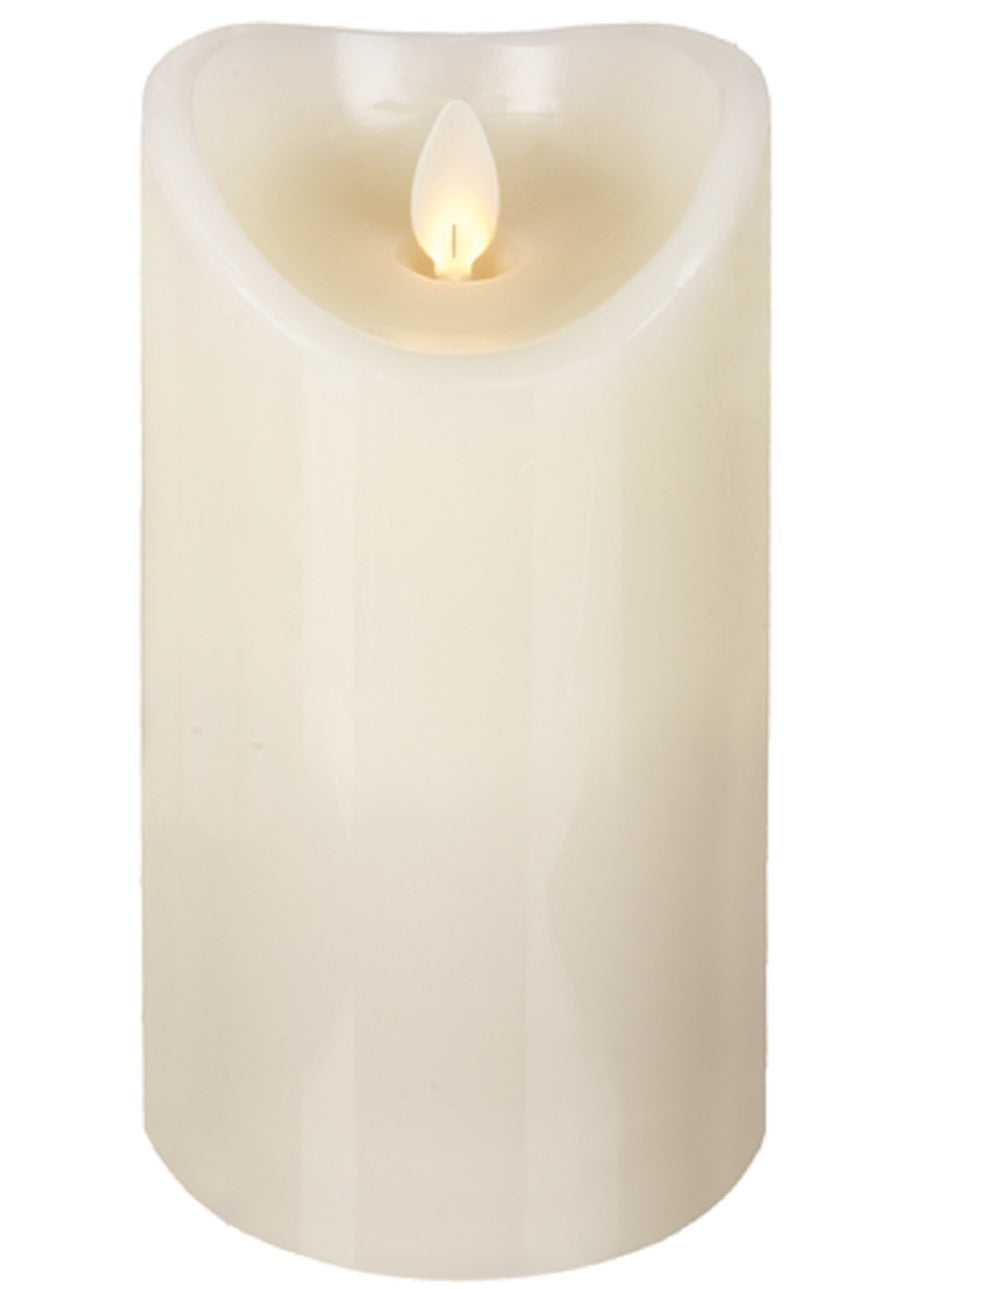 Ganz Wax LED Pillar Candle- Style #LLWP1001